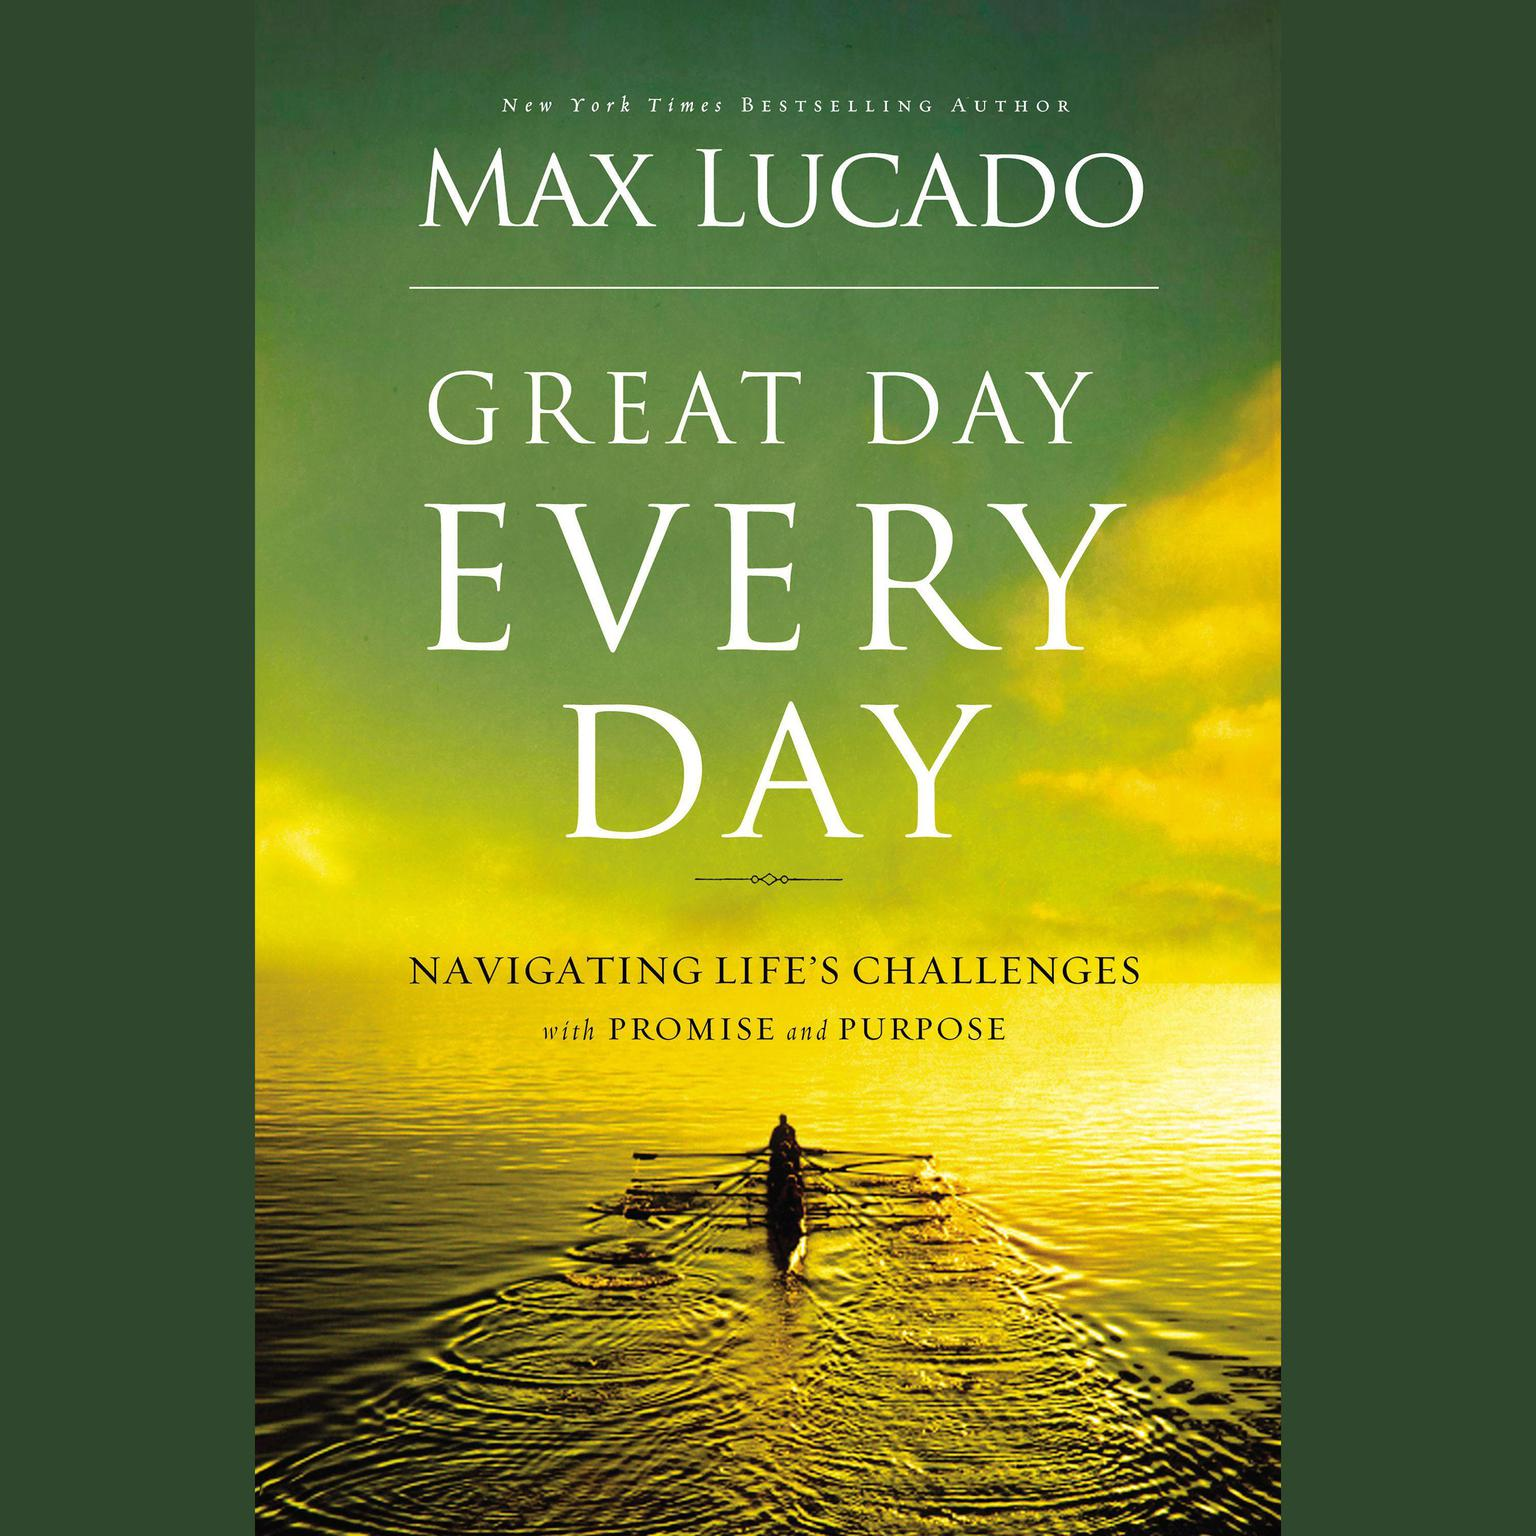 Printable Great Day Every Day: Navigating Life's Challenges with Promise and Purpose Audiobook Cover Art